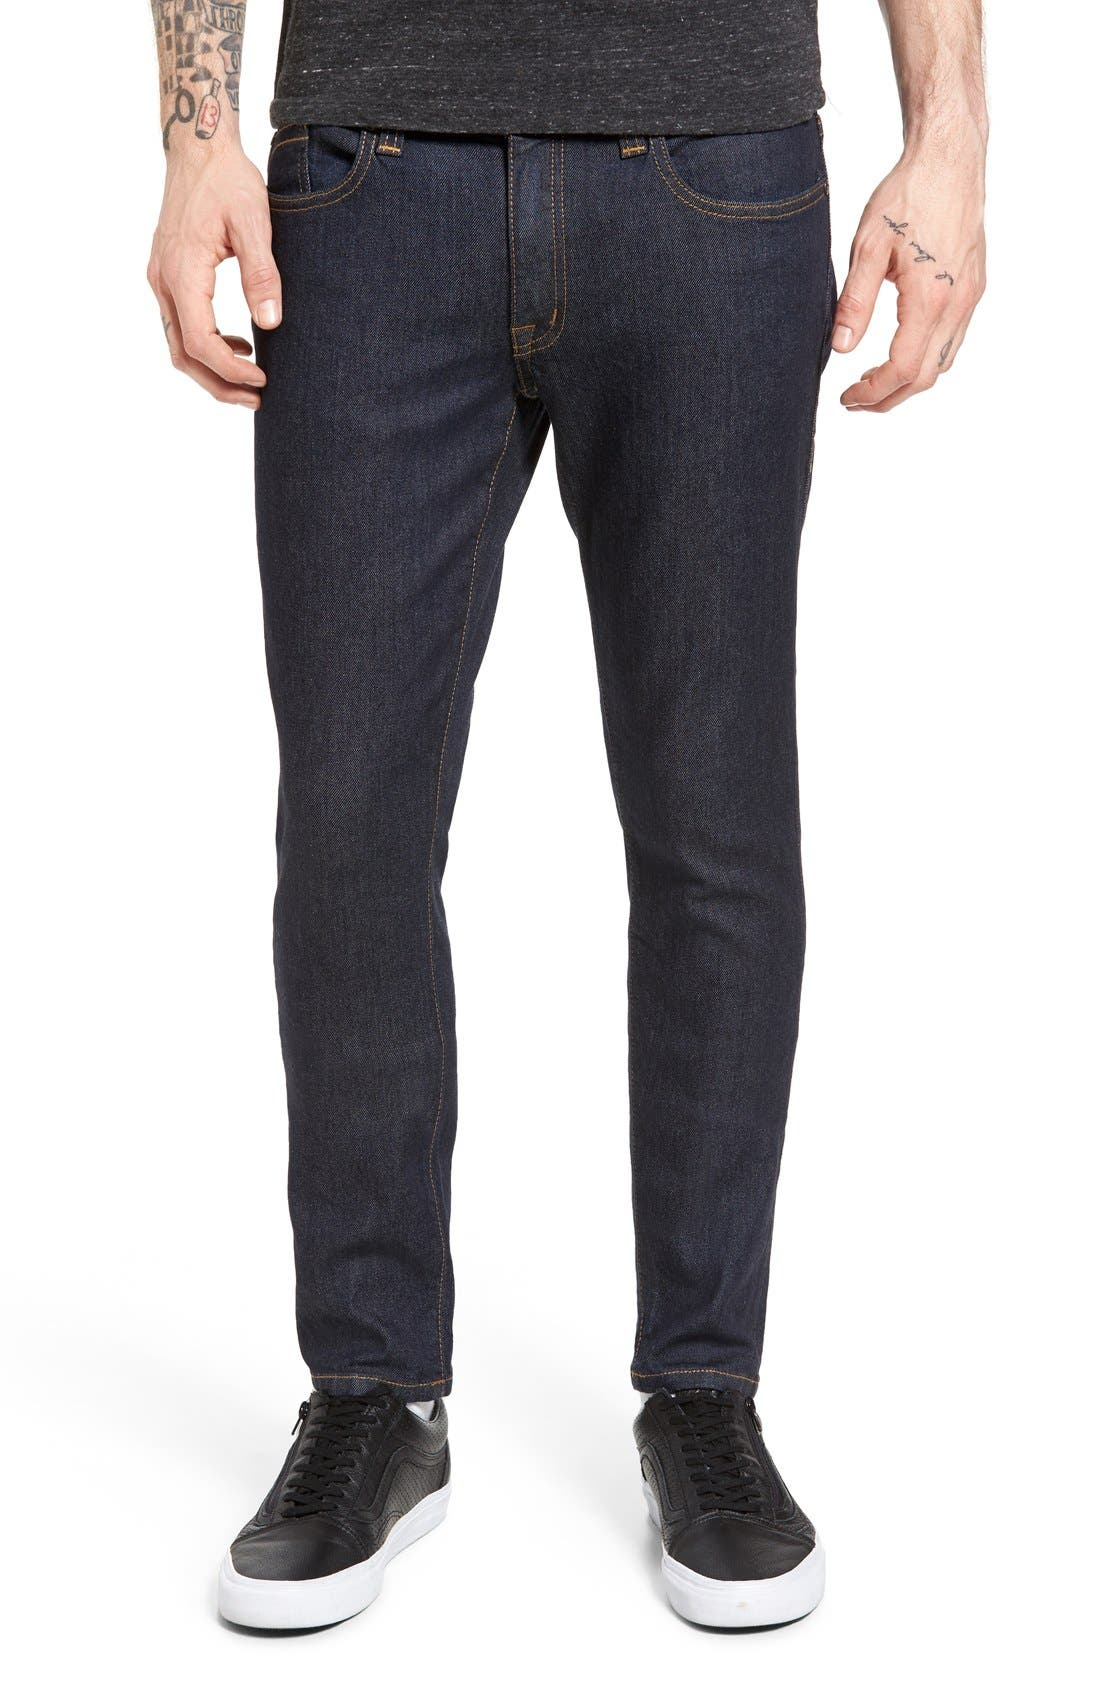 Vantage Skinny Fit Jeans,                         Main,                         color, Halo Rinse